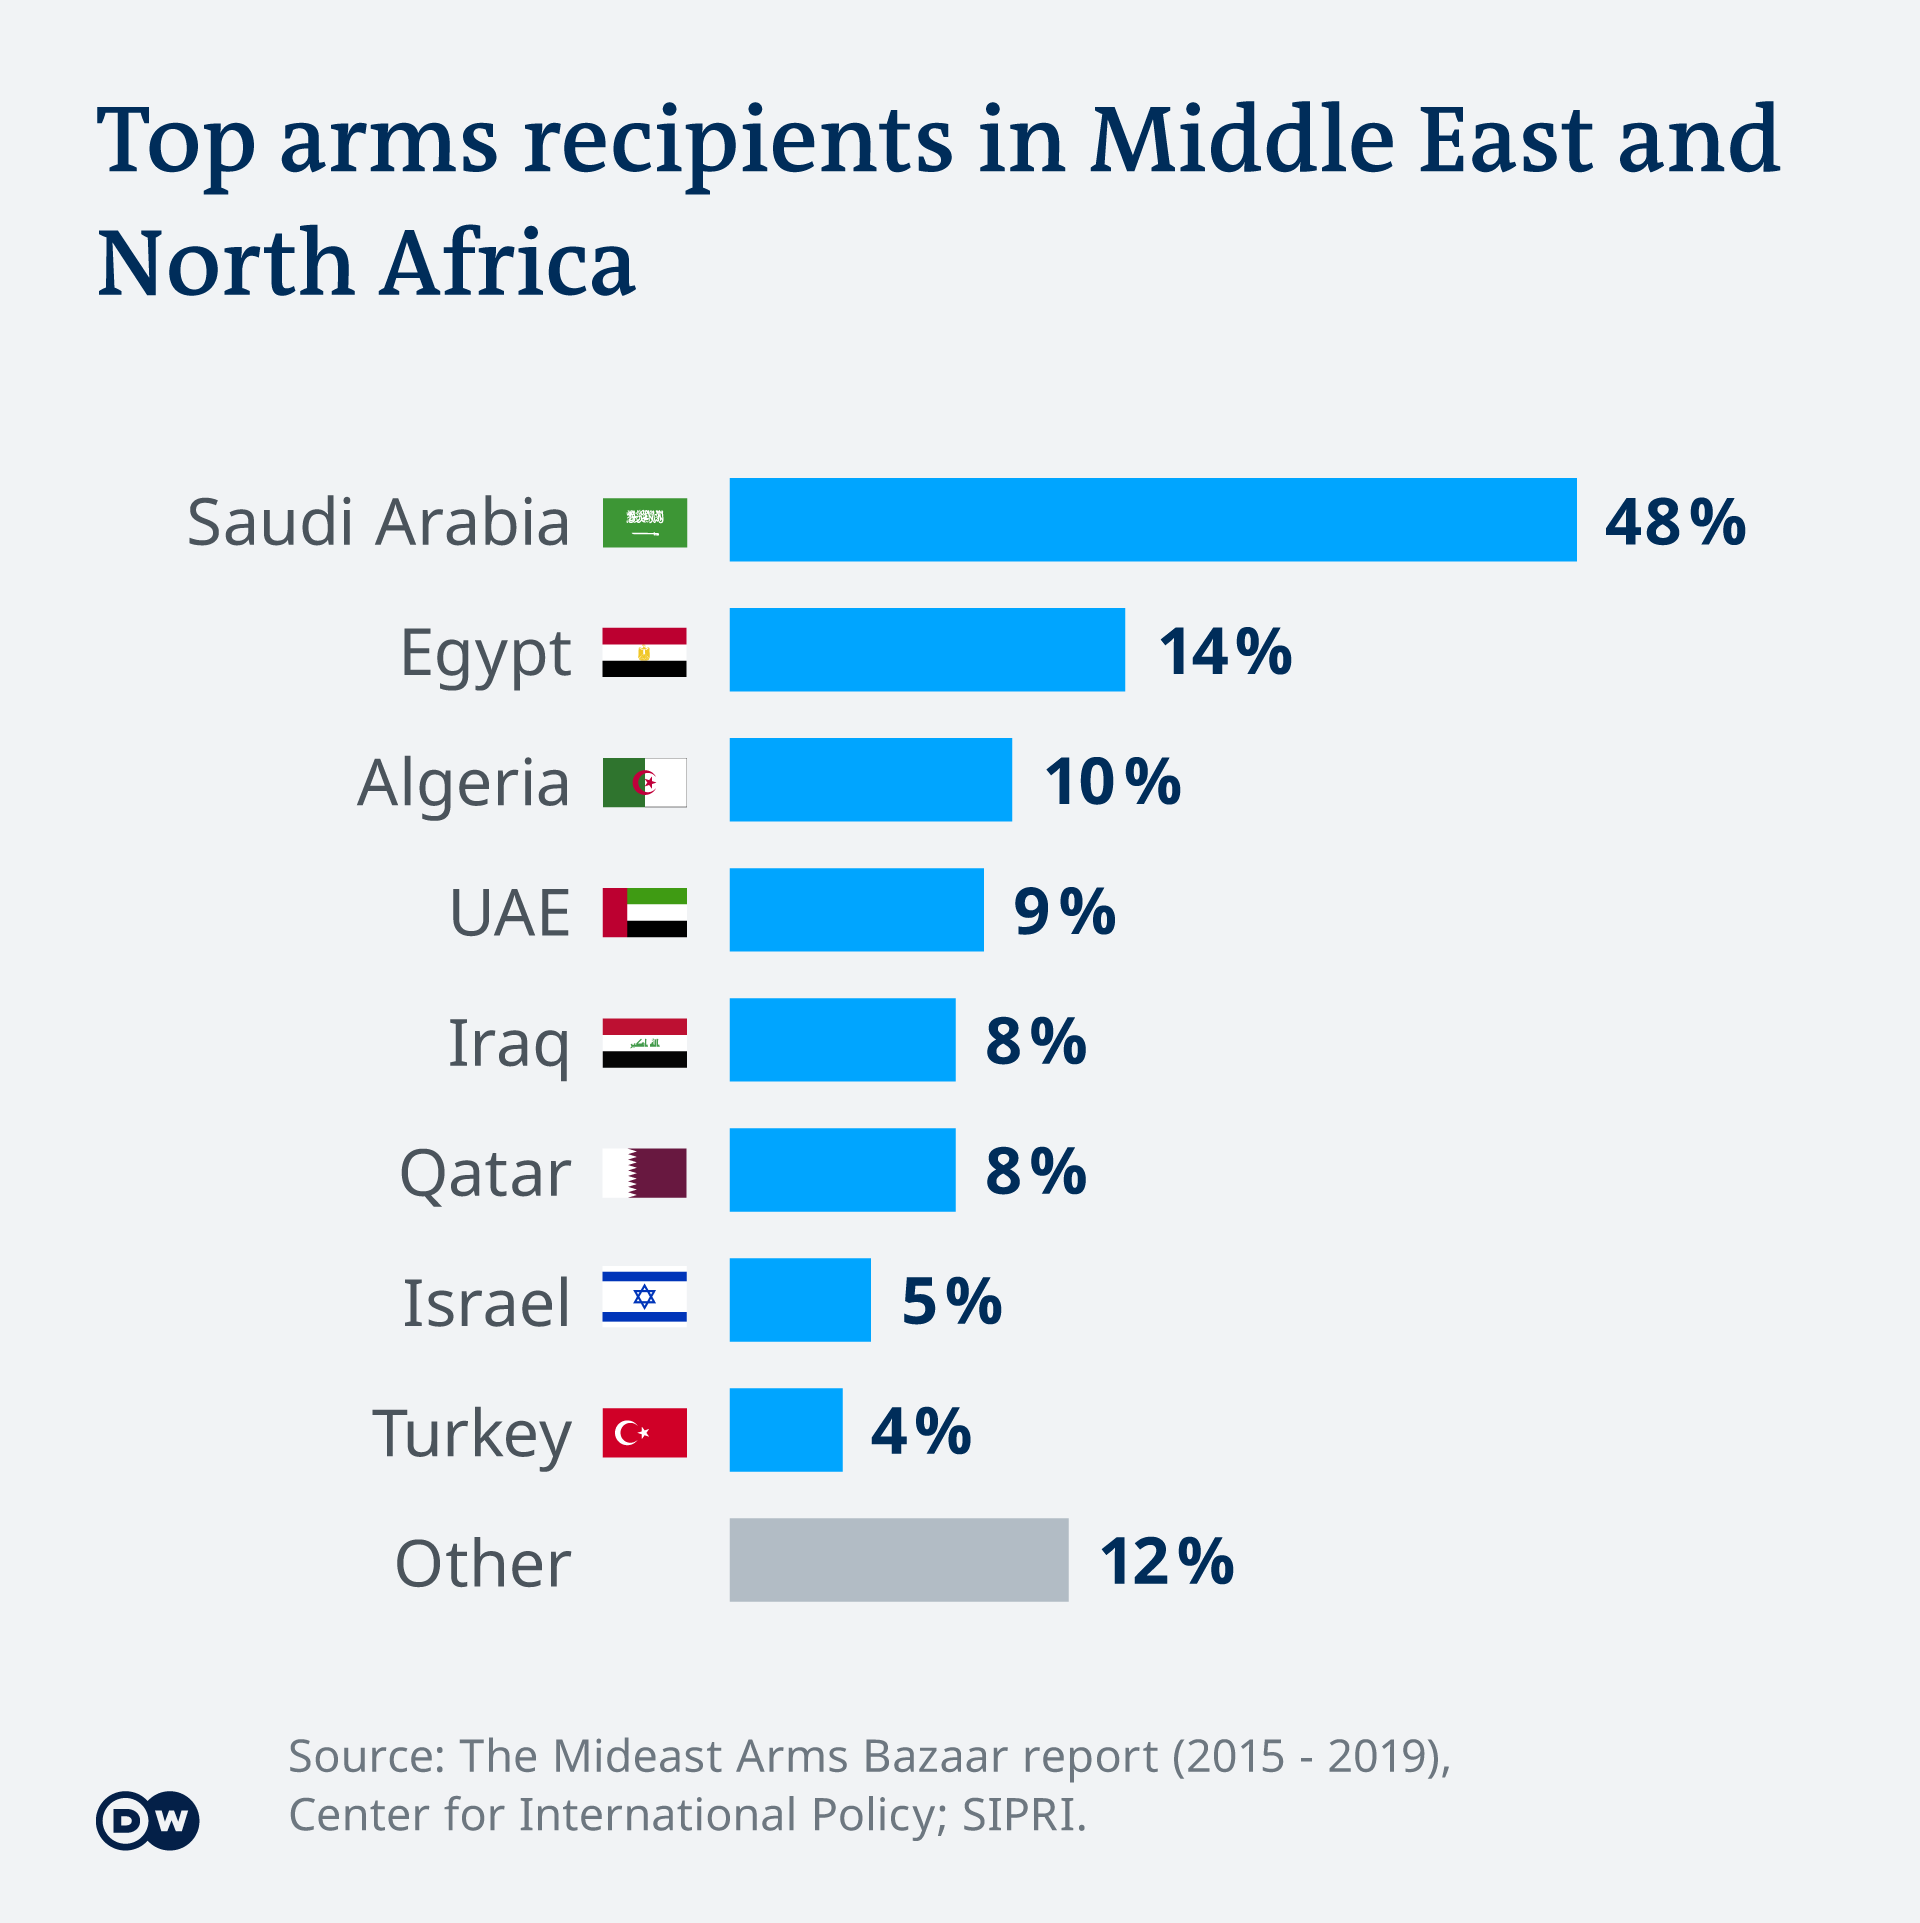 Graph showing Top Arms Recipients in the Middle East